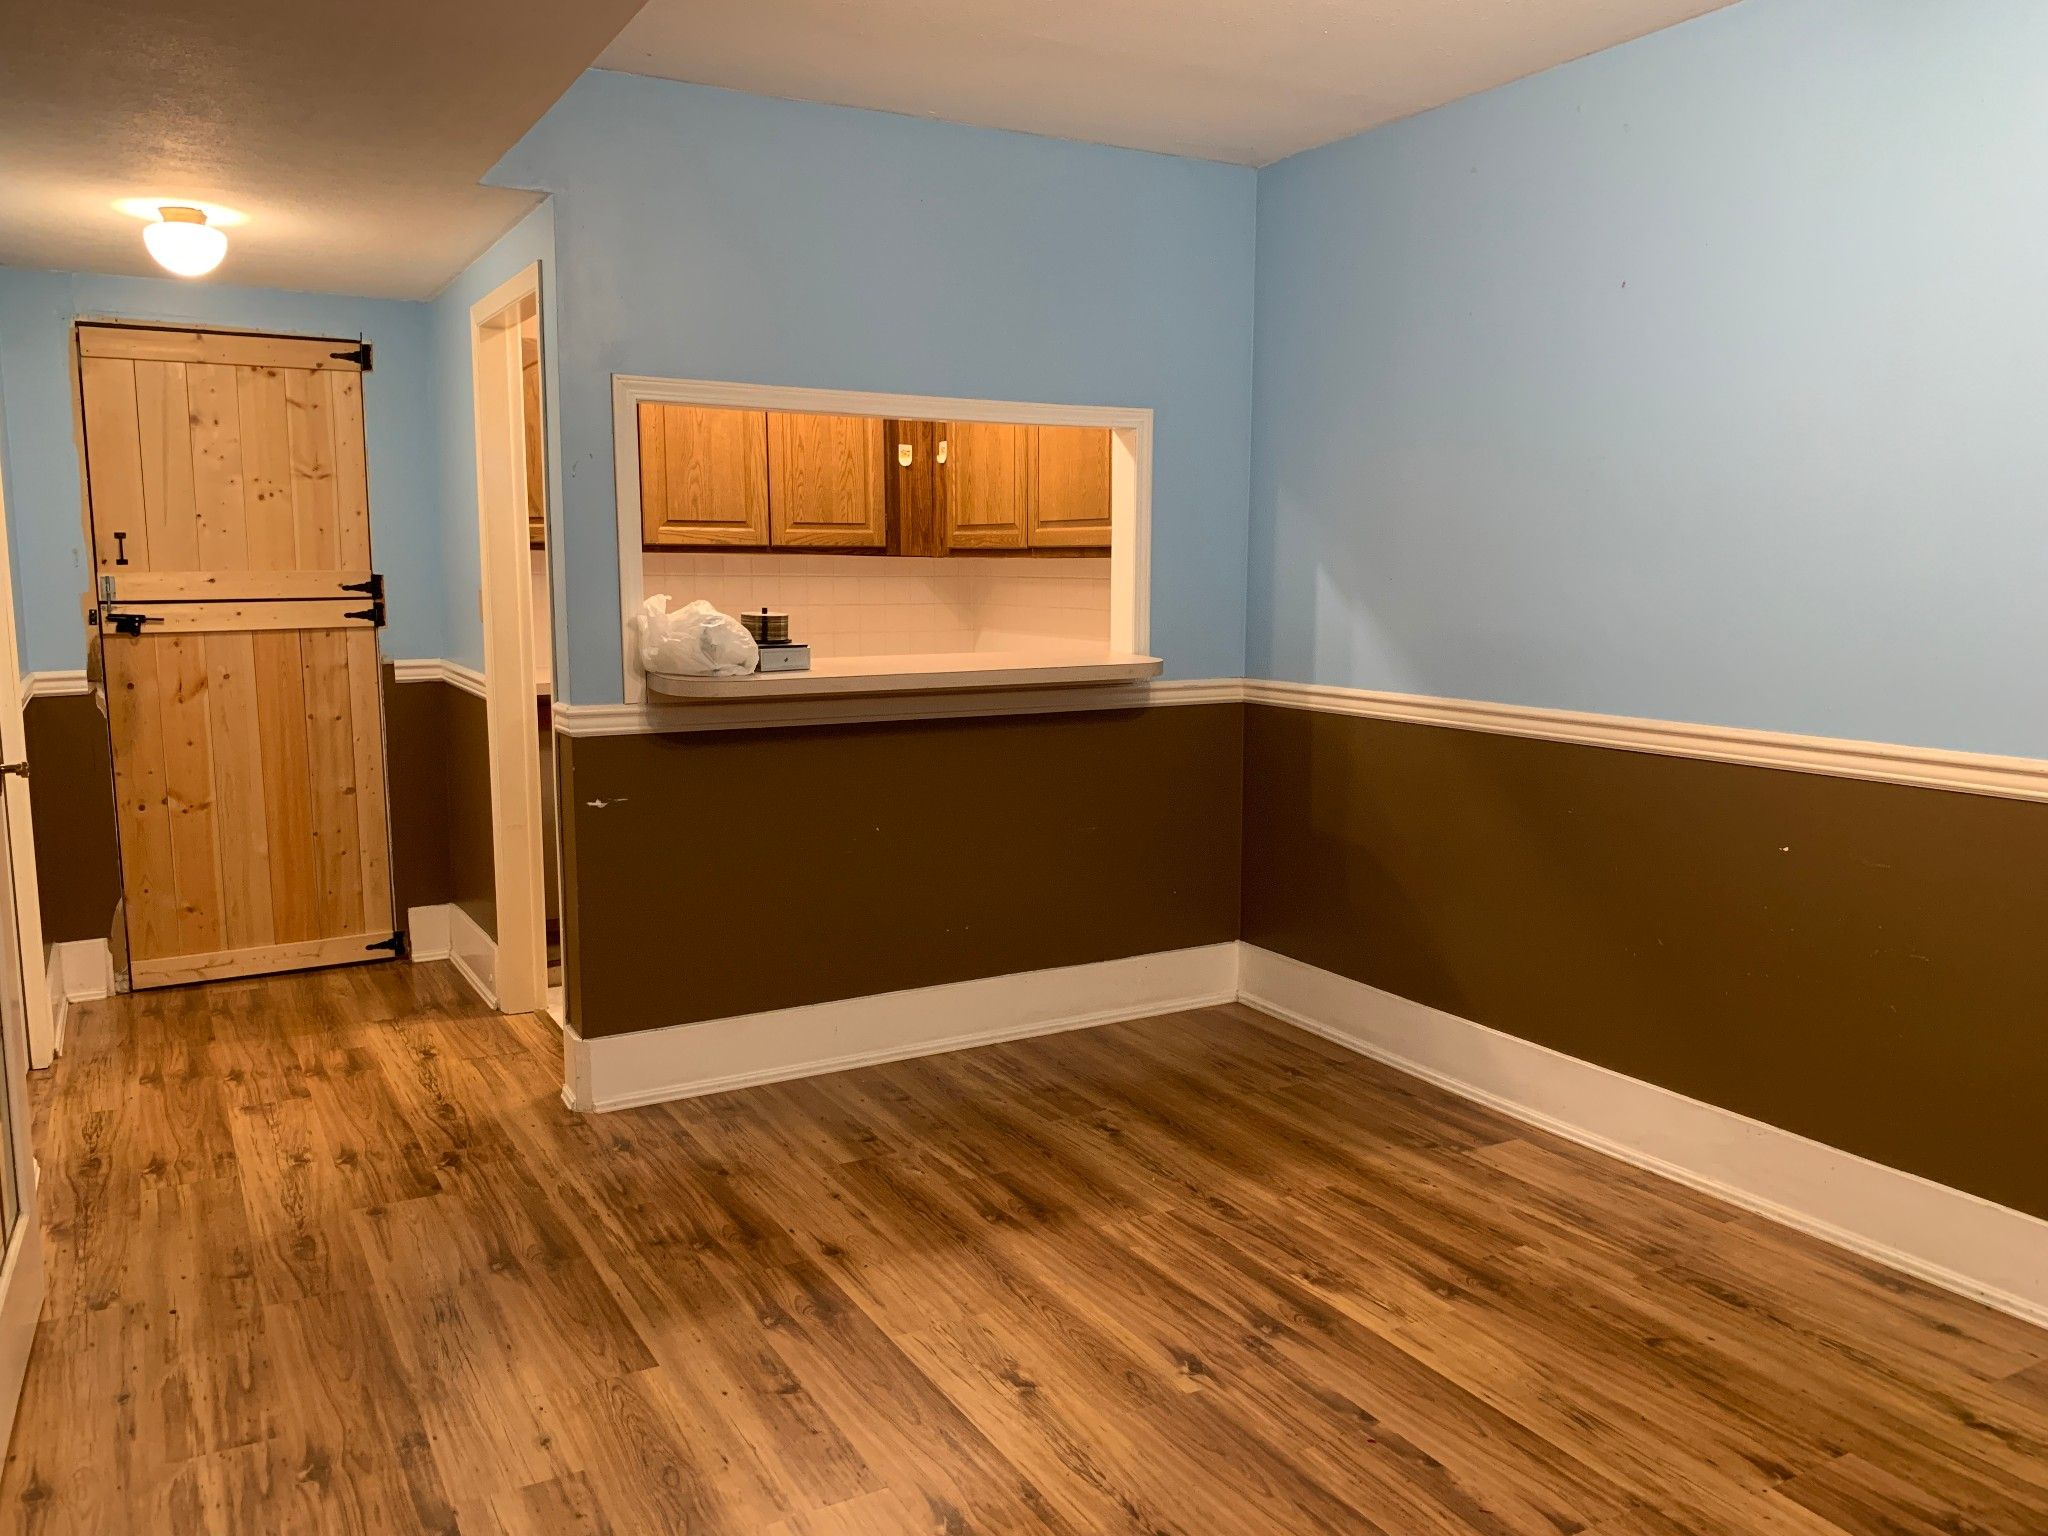 Photo 14: Photos: 2289 Woodstock Dr. in Abbotsford: Abbotsford East House for rent